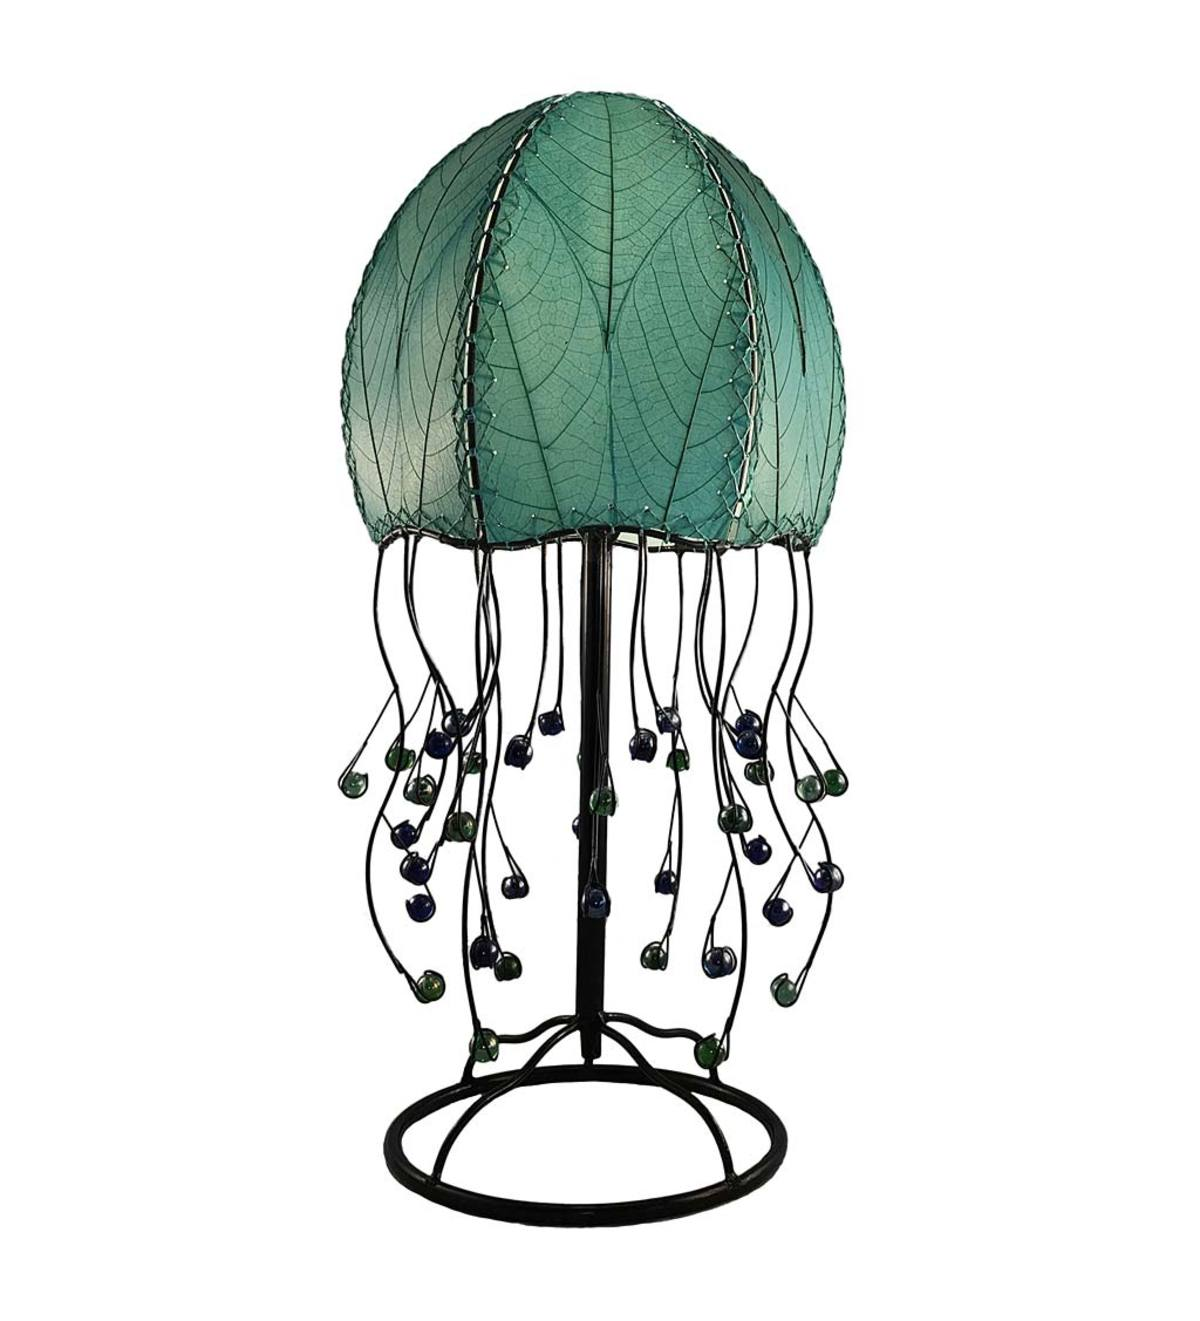 Handcrafted Jellyfish Table Lamp - Aqua